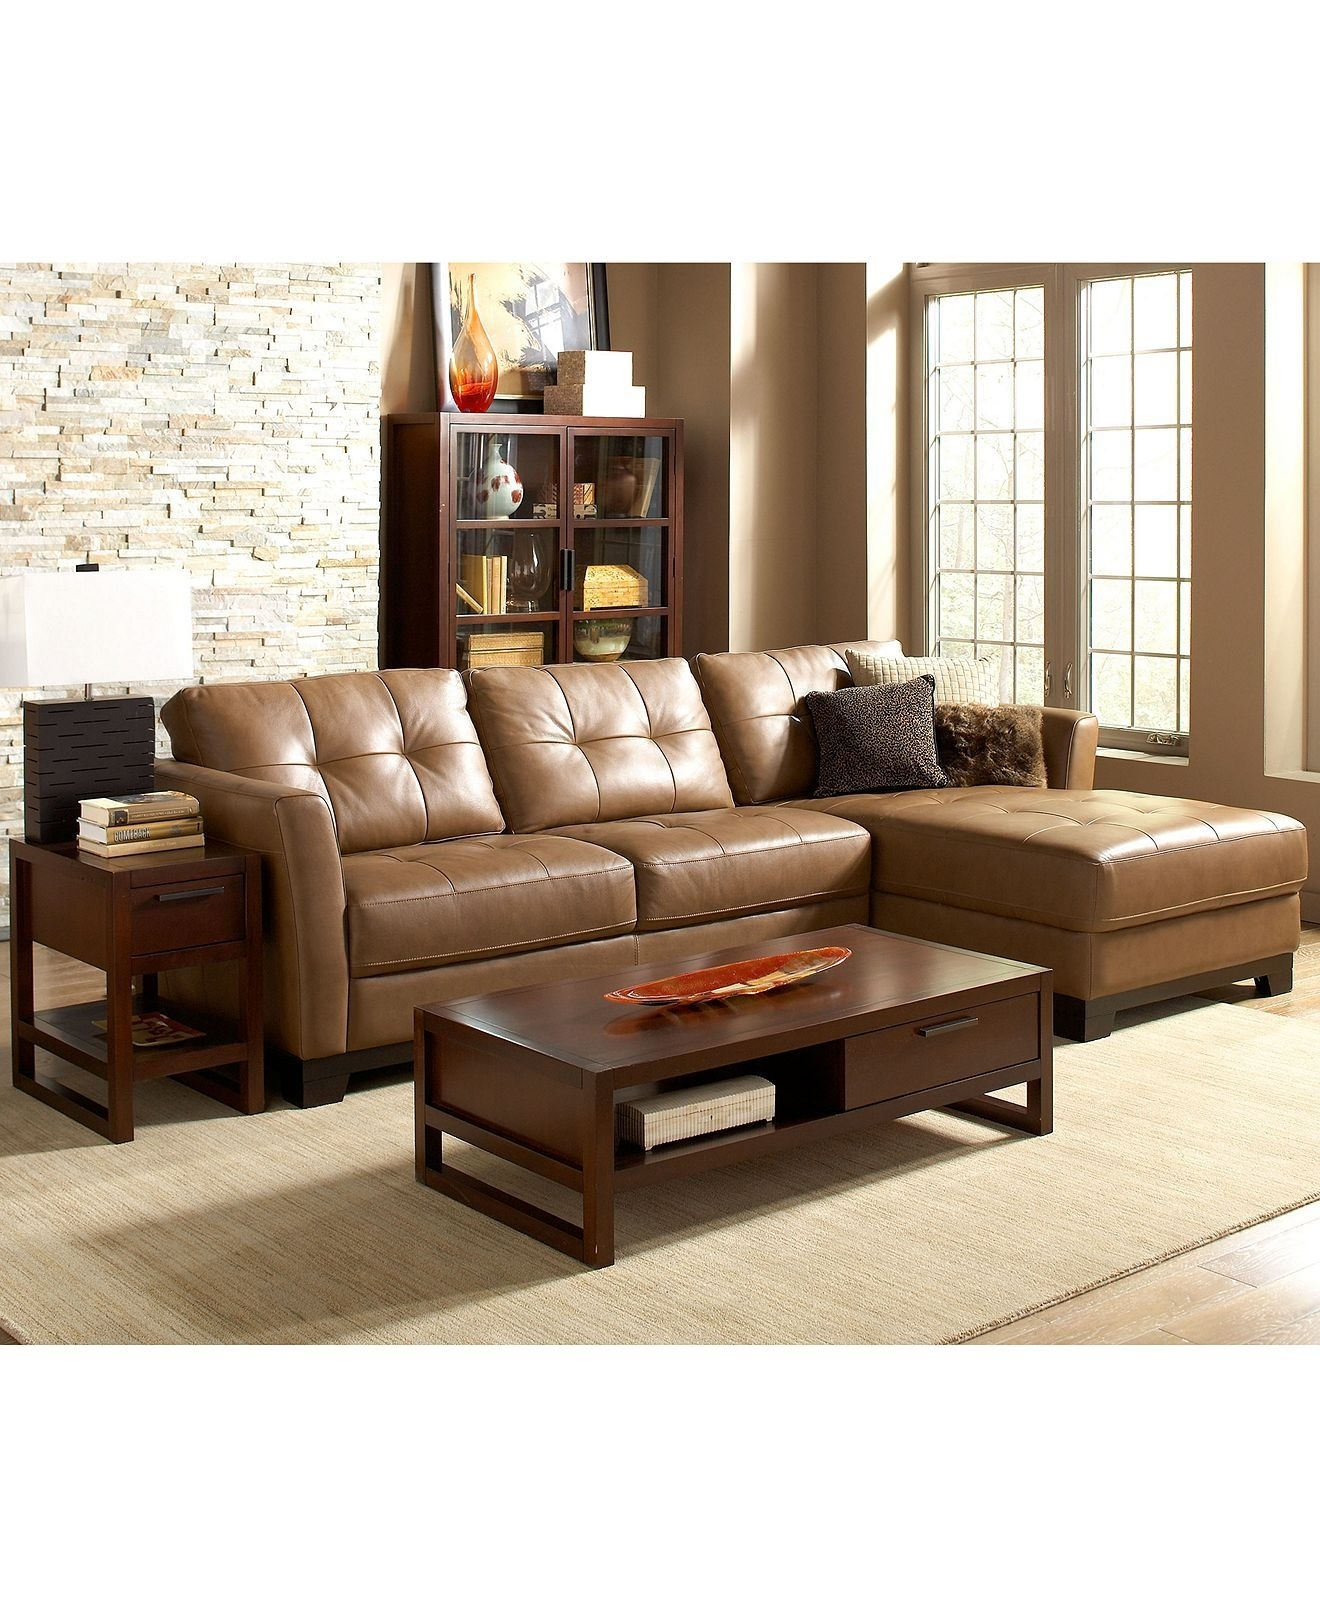 Martino Leather Sectional Living Room Furniture Sets & Pieces Regarding Economax Sectional Sofas (View 4 of 10)